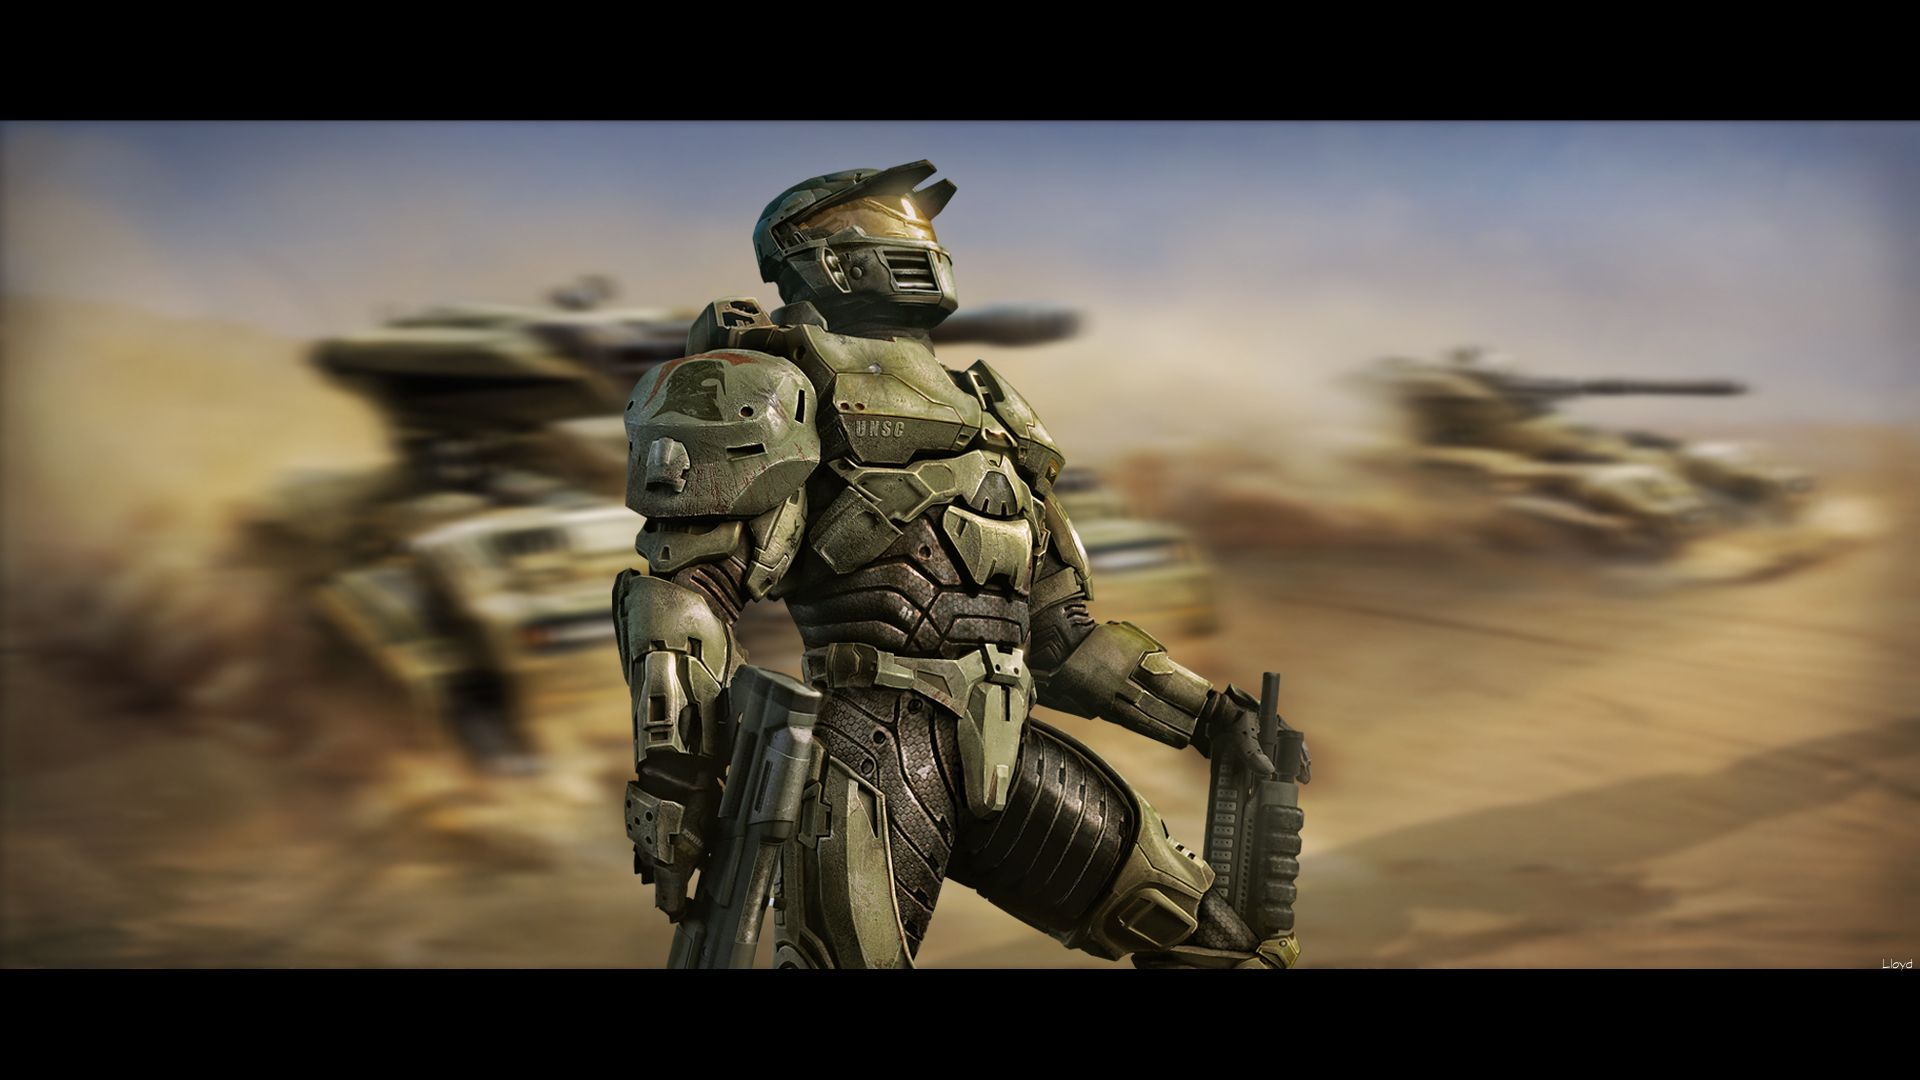 Spartan Artwork Halo Green Spartan Concept Art Hd Wallpaper Halo Reach Halo Concept Art